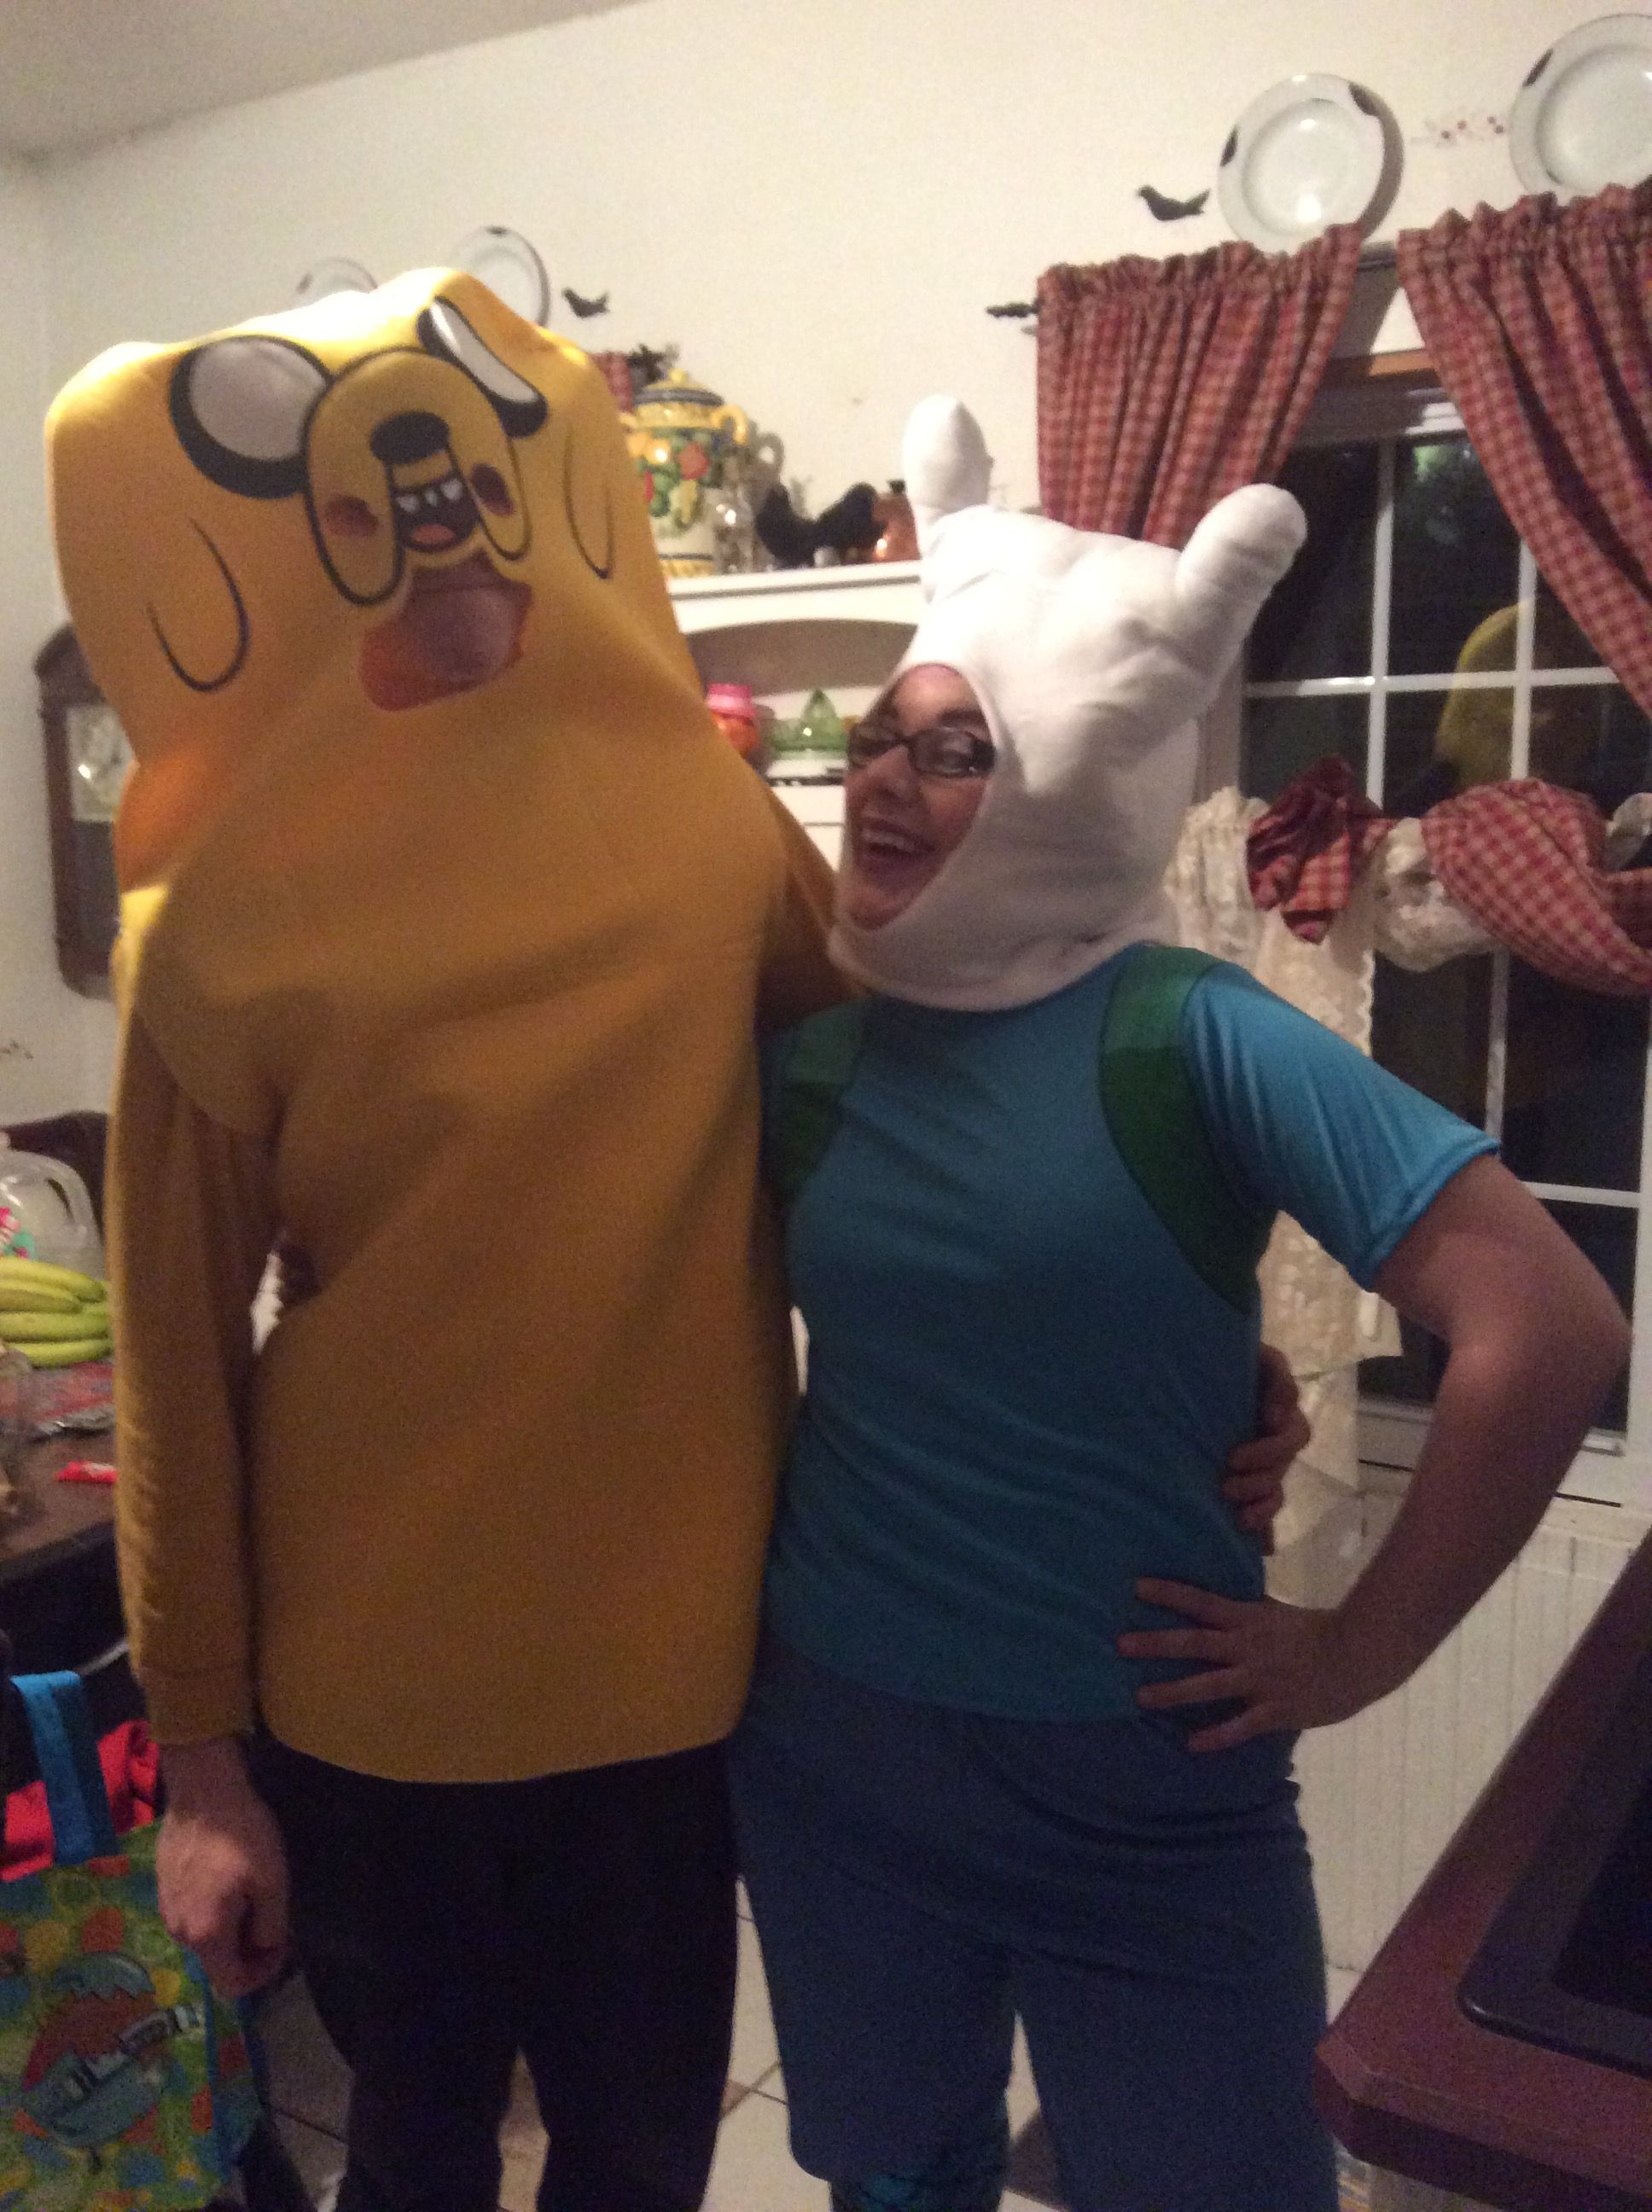 Me and the babe as Jake and Finn from Adventure Time!